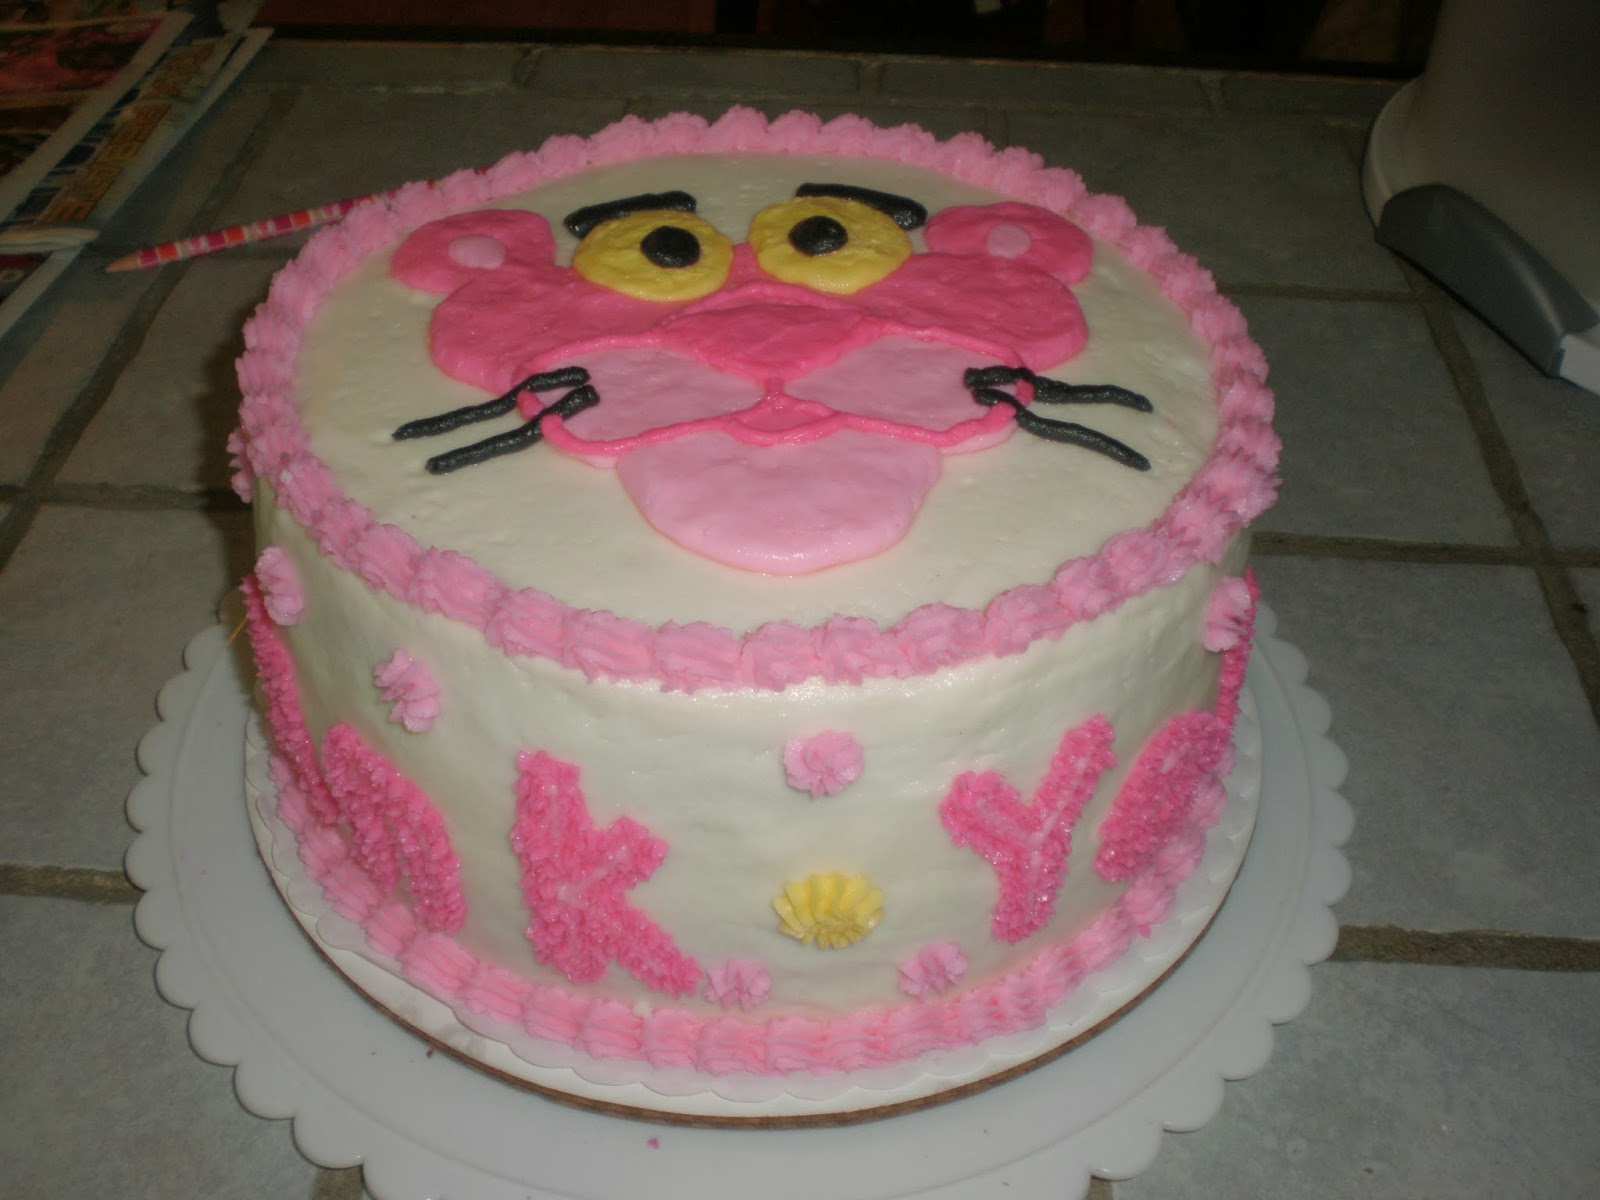 Cakes by Mindy: Pink Panther Cake 9\